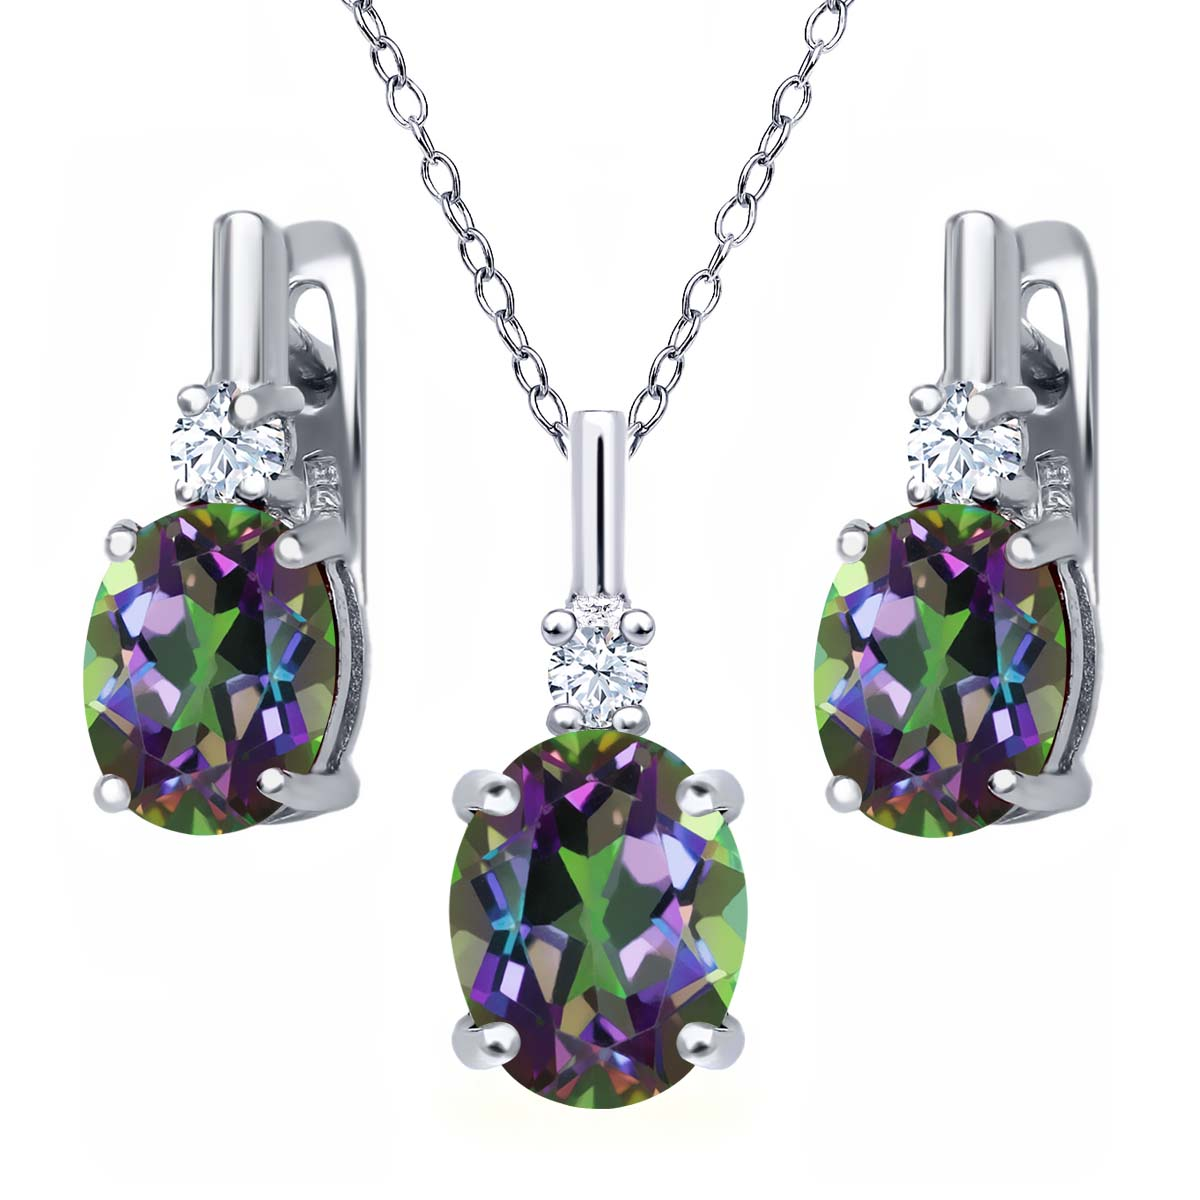 6.95 Ct Green Mystic Topaz White Created Sapphire 925 Silver Pendant Earrings Set by